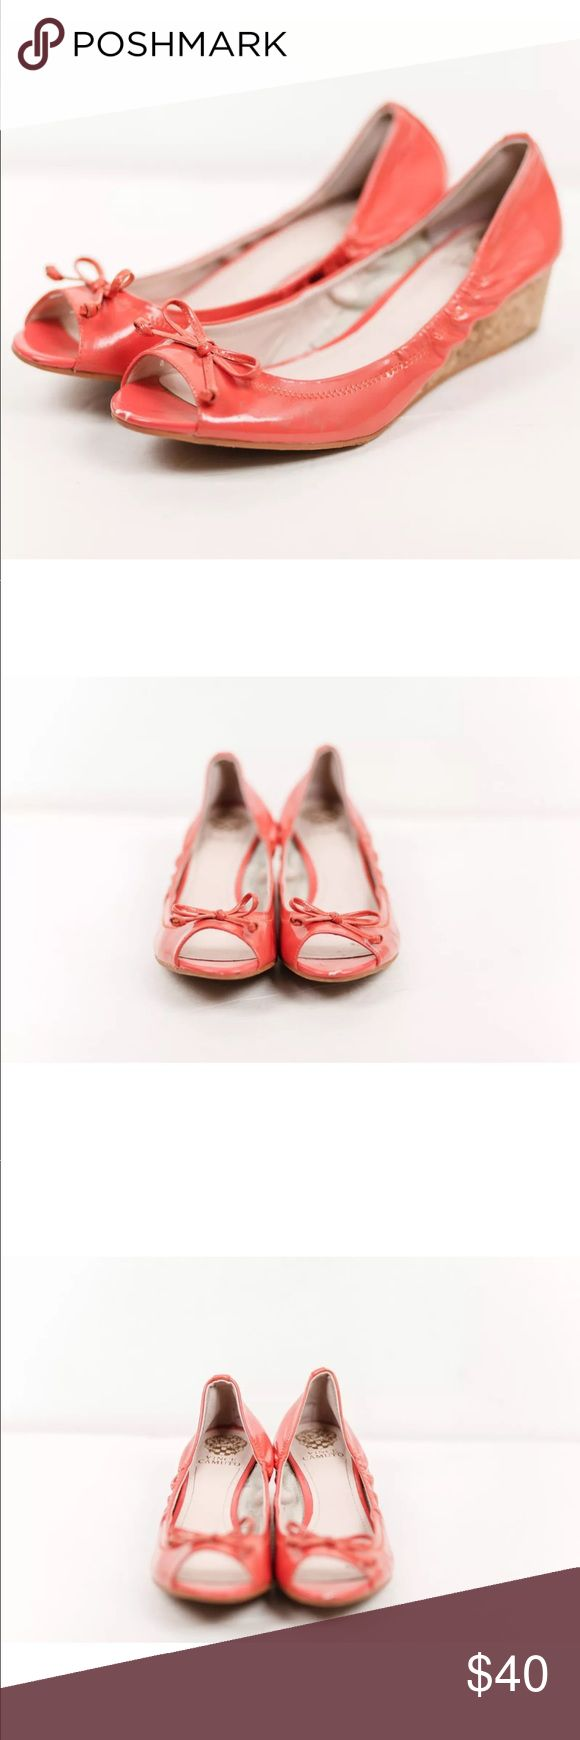 VINCE CAMUTO RITTS Coral Orange Wedge Open Toe VINCE CAMUTO RITTS Coral Orange Leather Cork Wedge Open Toe Shoe Sandals Sz 10M. Wear on the insoles Vince Camuto Shoes Wedges